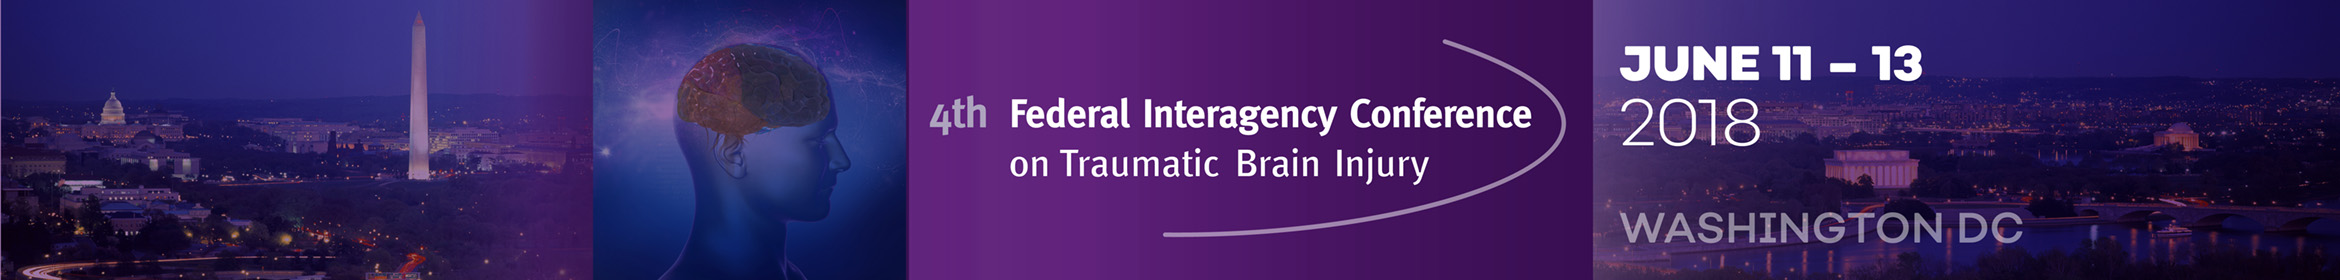 4th Federal Interagency Conference on TBI Main banner